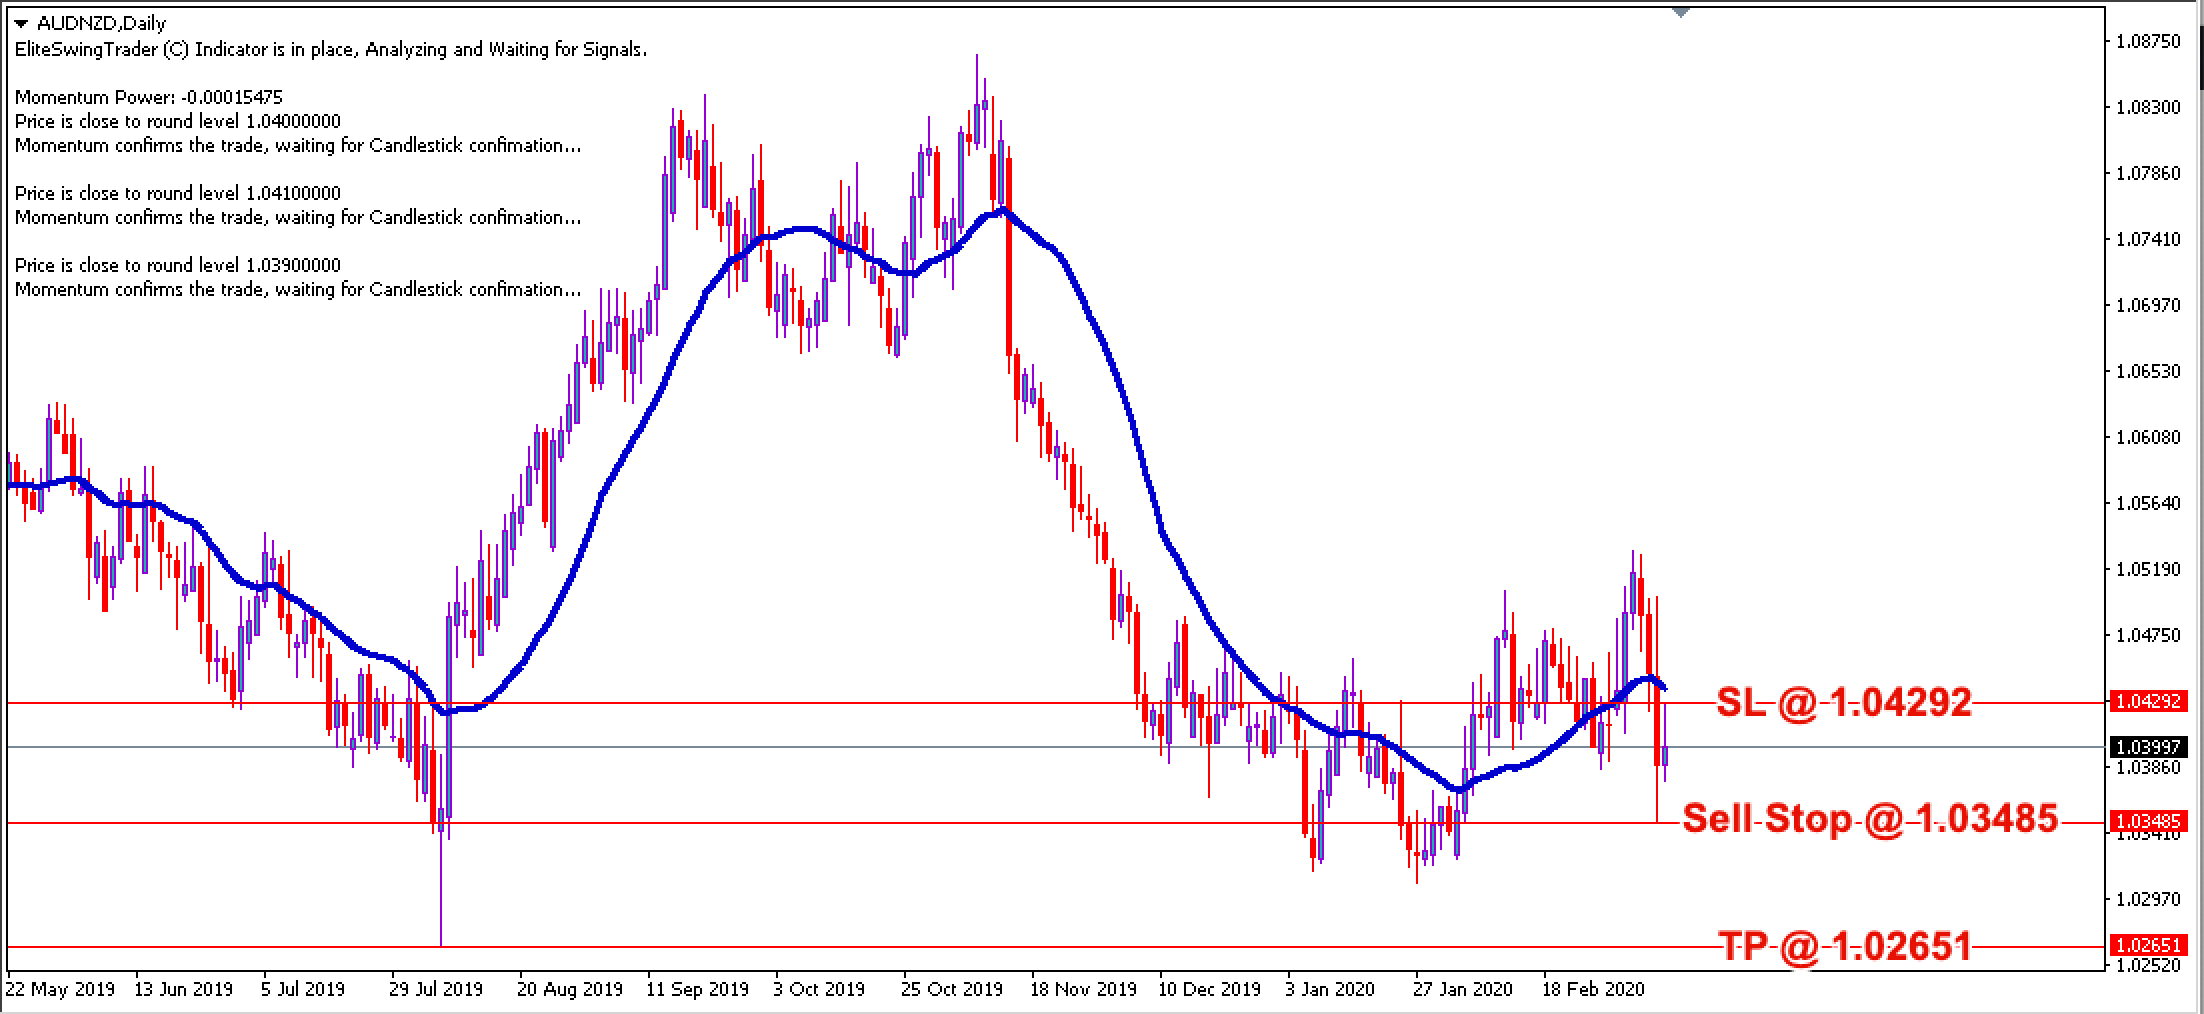 AUD/NZD Daily Price Forecast – 10th March 2020